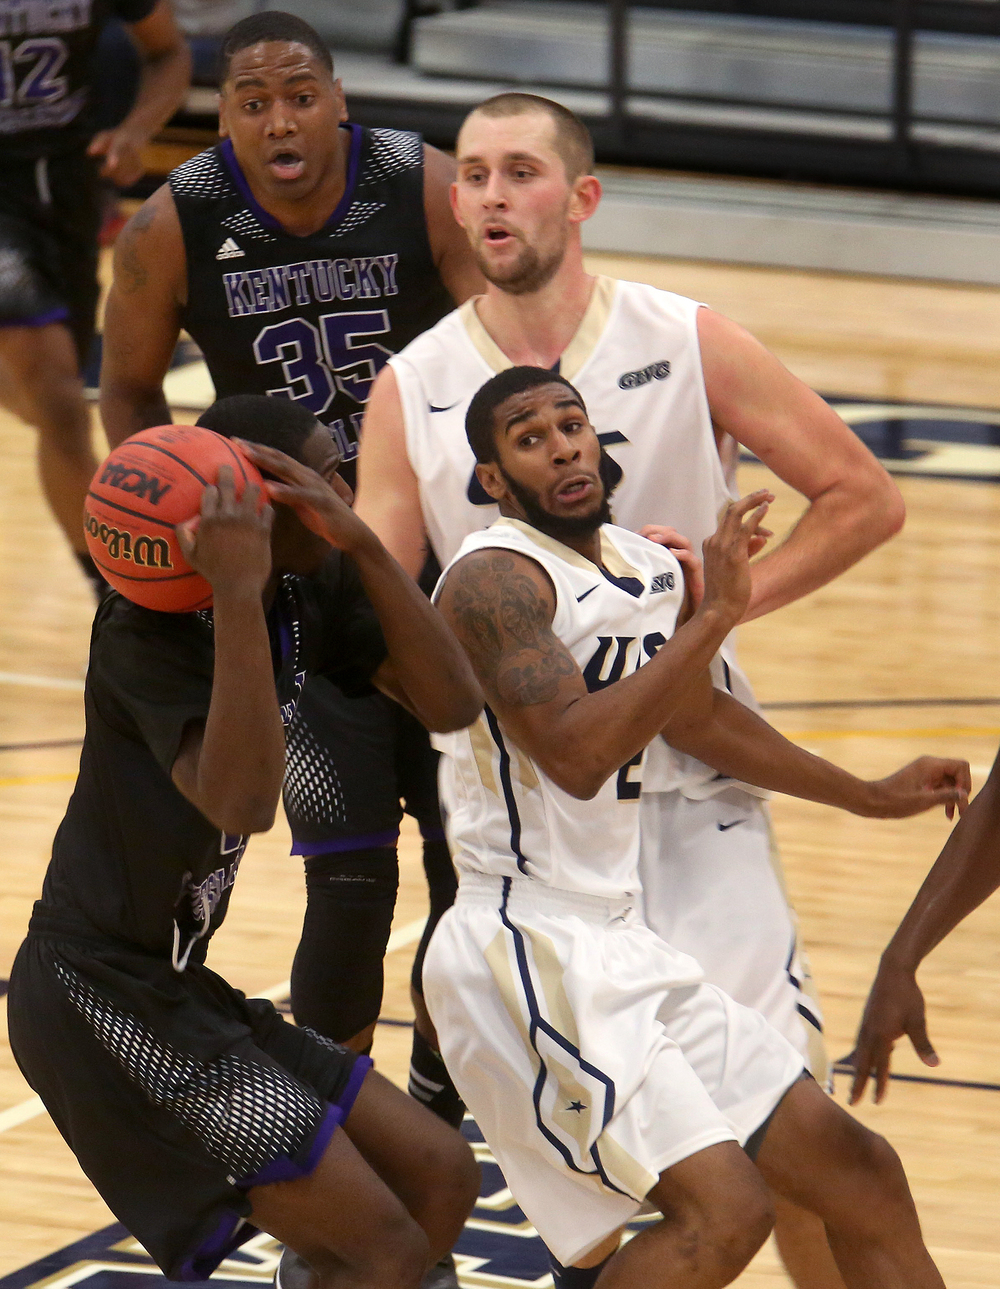 Panthers player Basil Deveaux tries to keep control of the ball while under pressure from Stars player Davi Austin at center. The Kentucky Wesleyan Panthers defeated the UIS Prairie Stars 80-61 in men's basketball action at the TRAC center on the UIS campus on Sunday, Dec. 14, 2014. David Spencer/The State Journal-Register